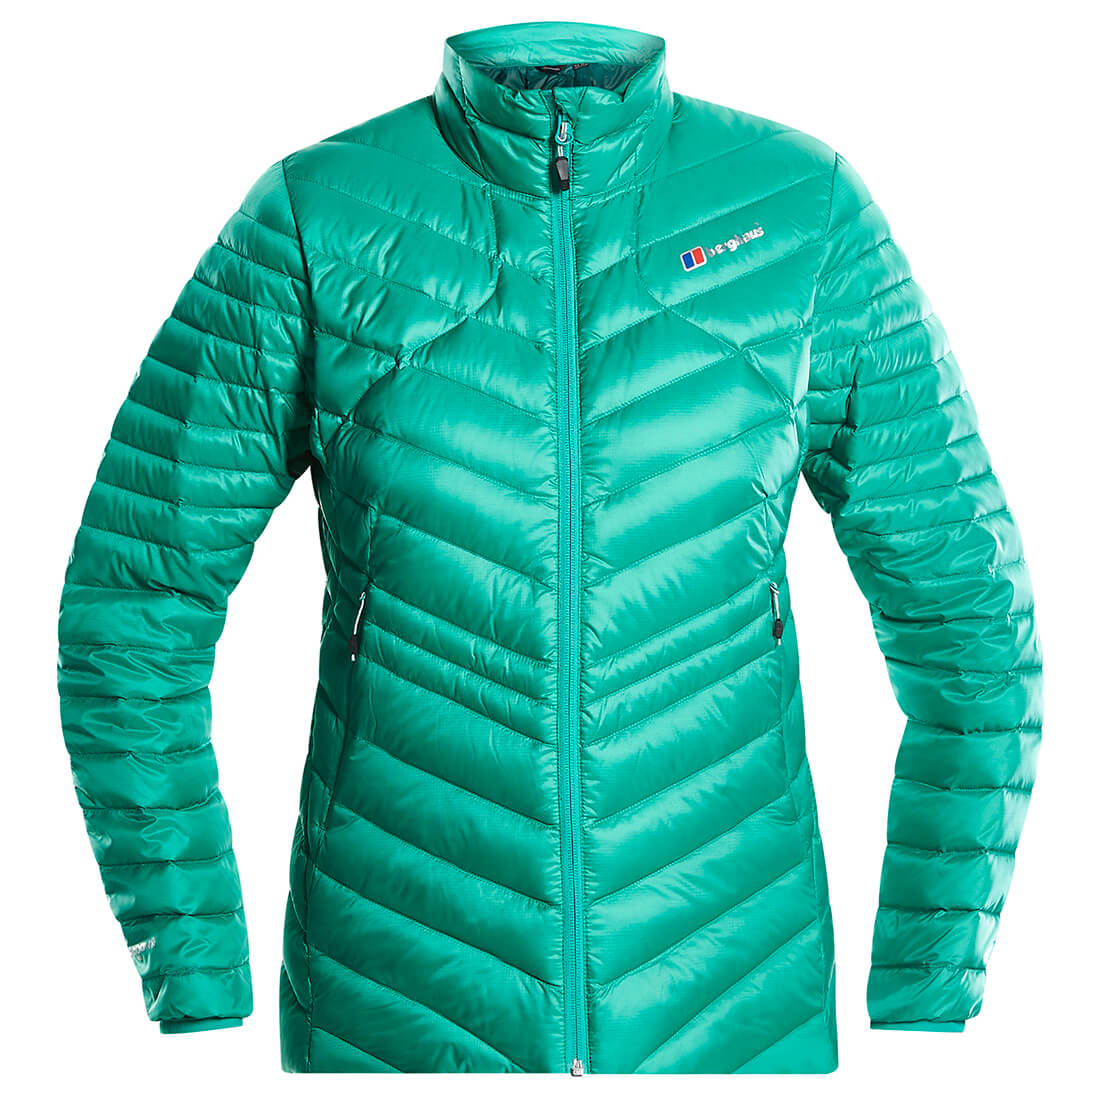 new product ef689 7e1c8 Berghaus Tephra Down Jacket - Giacca in piumino Donna ...